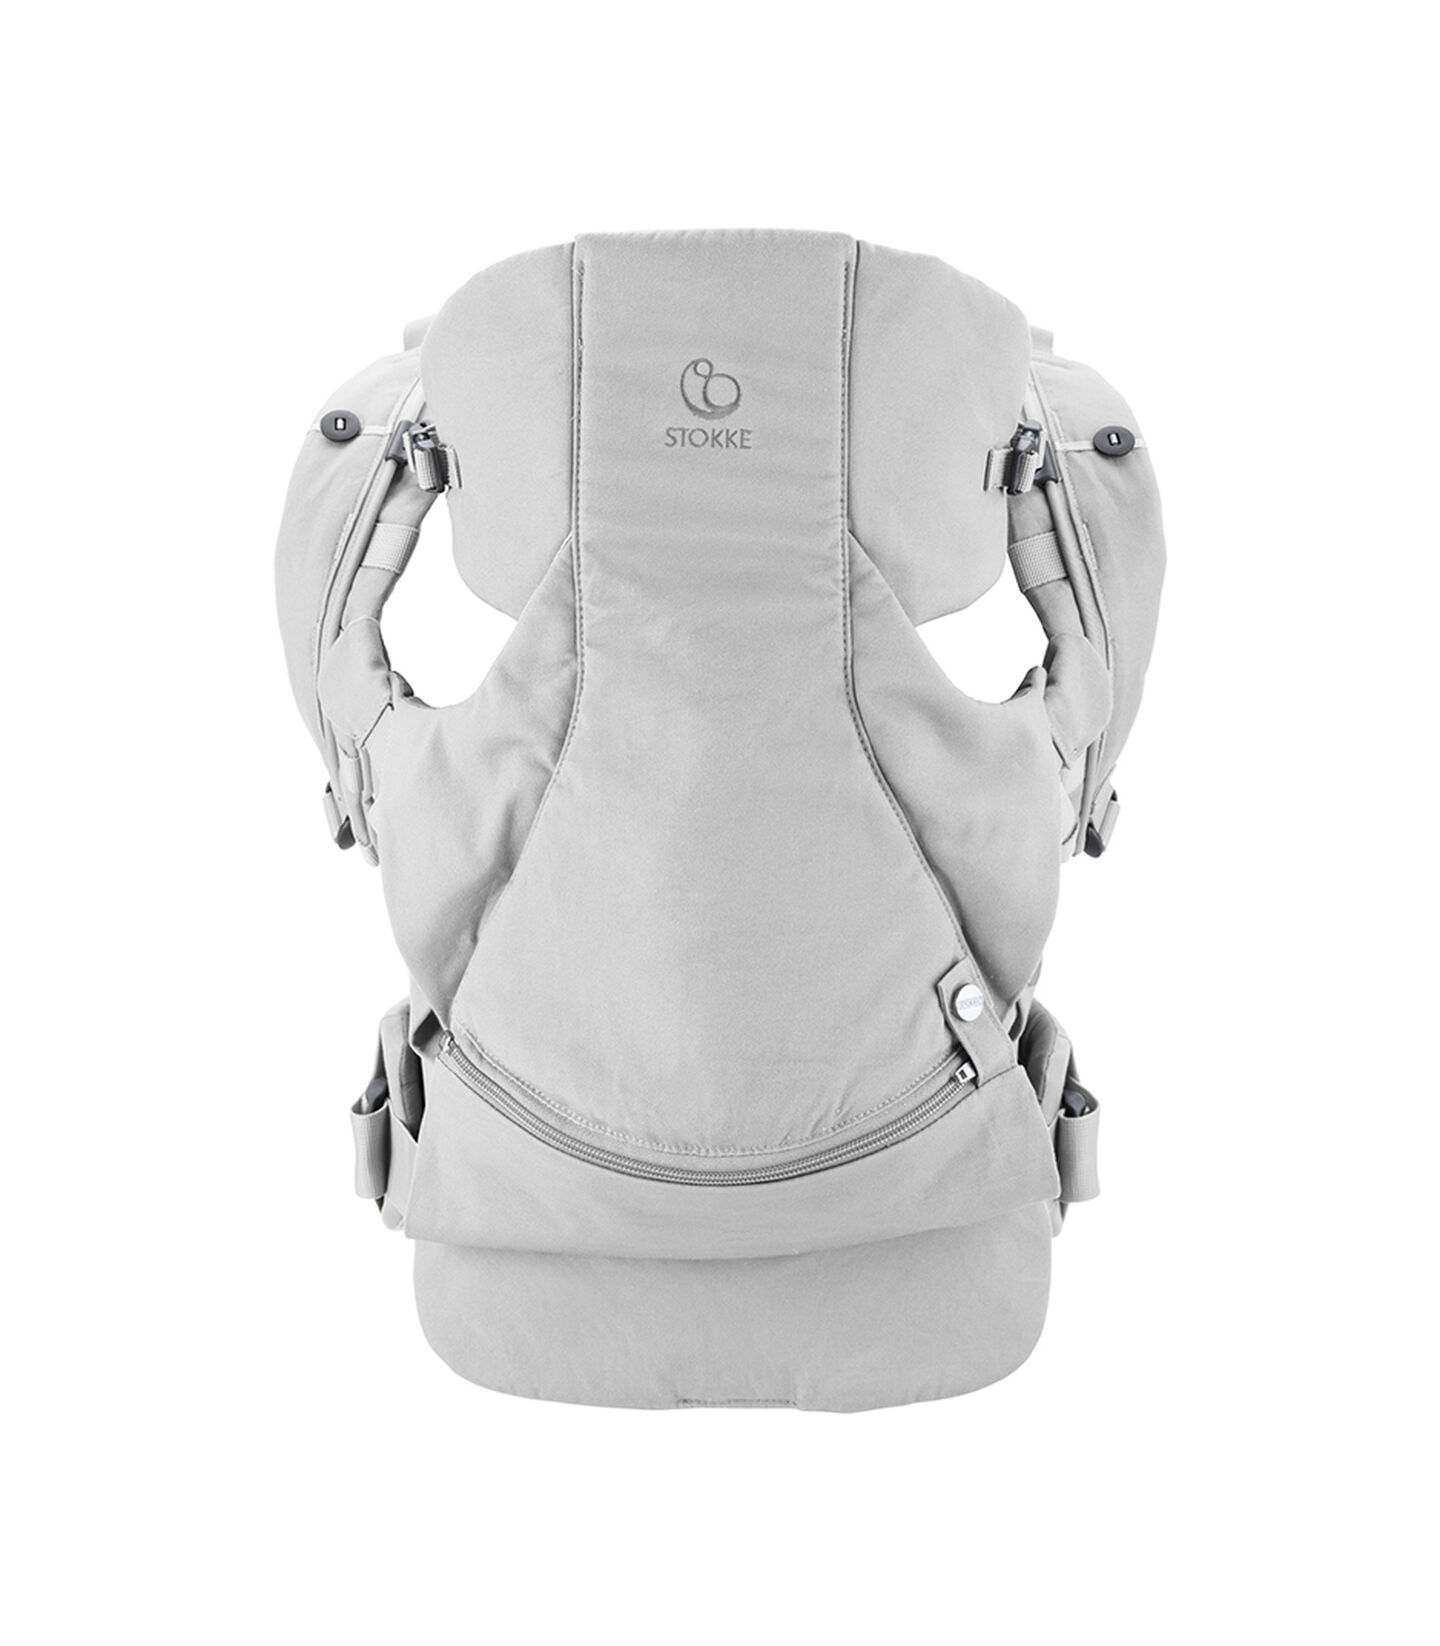 Stokke® MyCarrier™ OCS Frontal y Dorsal Gris, Gris, mainview view 2